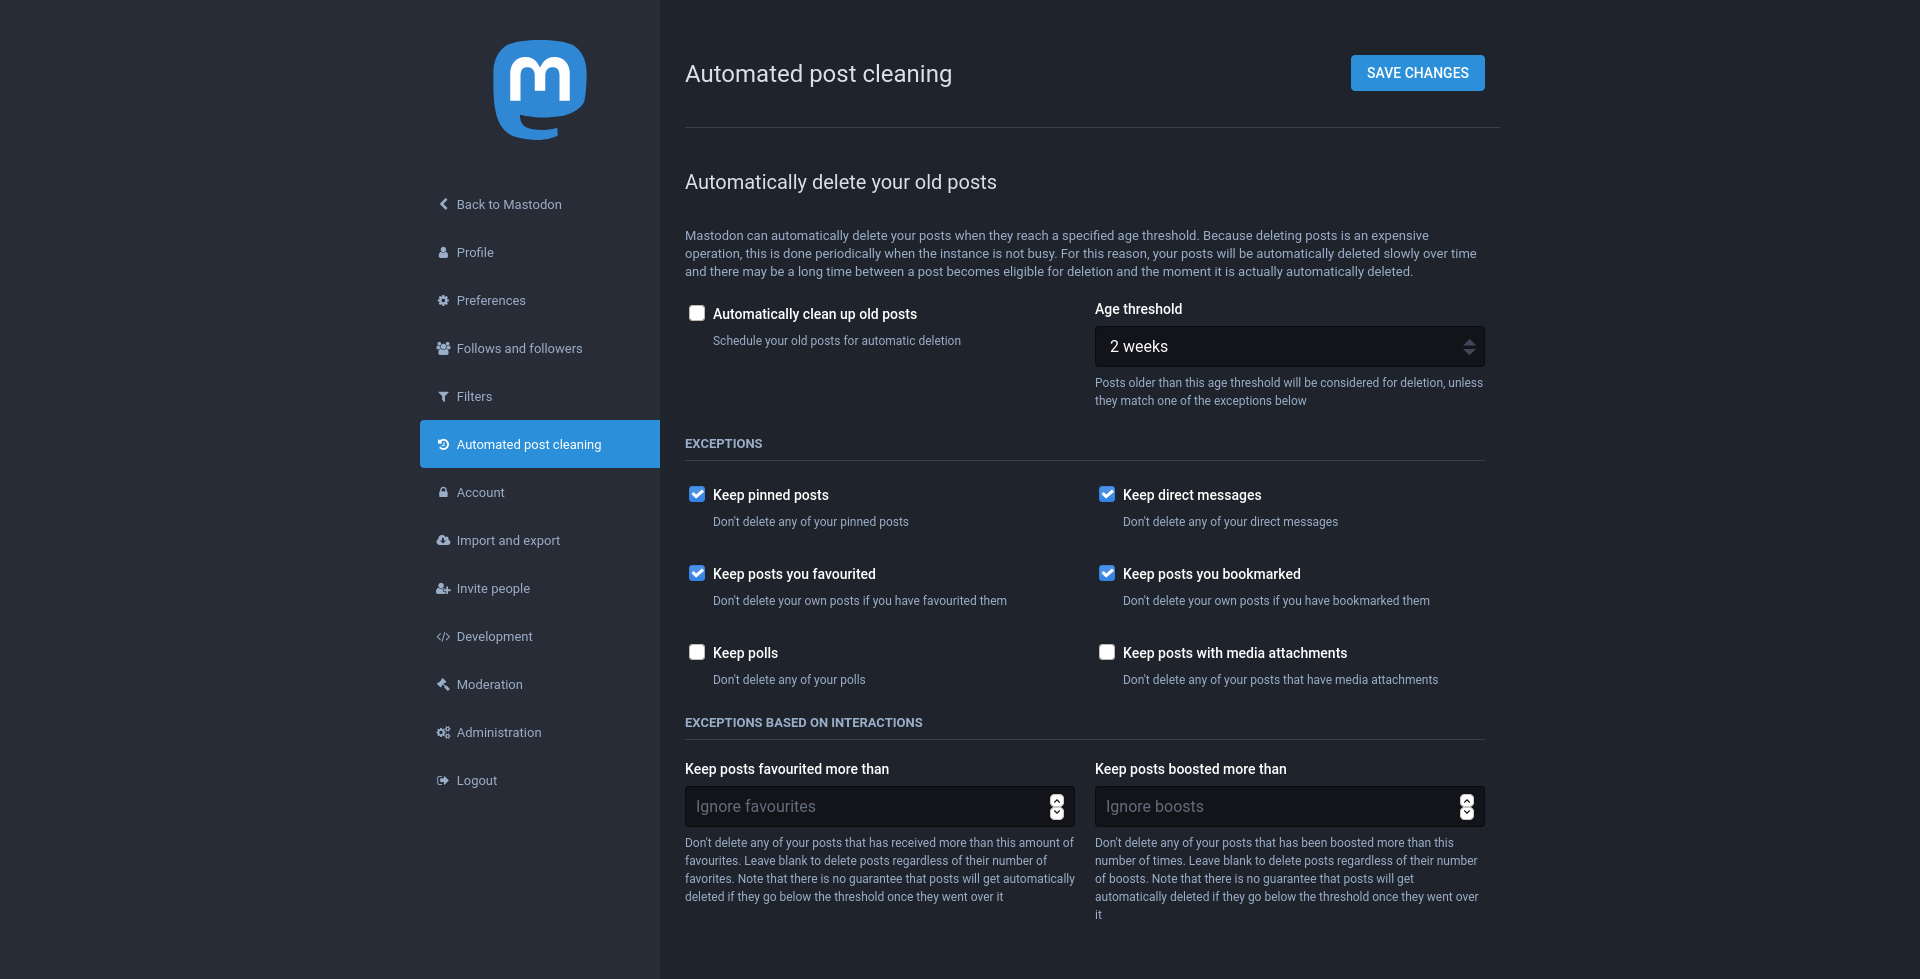 """Screenshot of a new Mastodon setting section called """"Automated post cleaning"""" with options such as """"Age threshold"""", """"Keep pinned posts"""" or """"Keep posts favourited more than"""""""